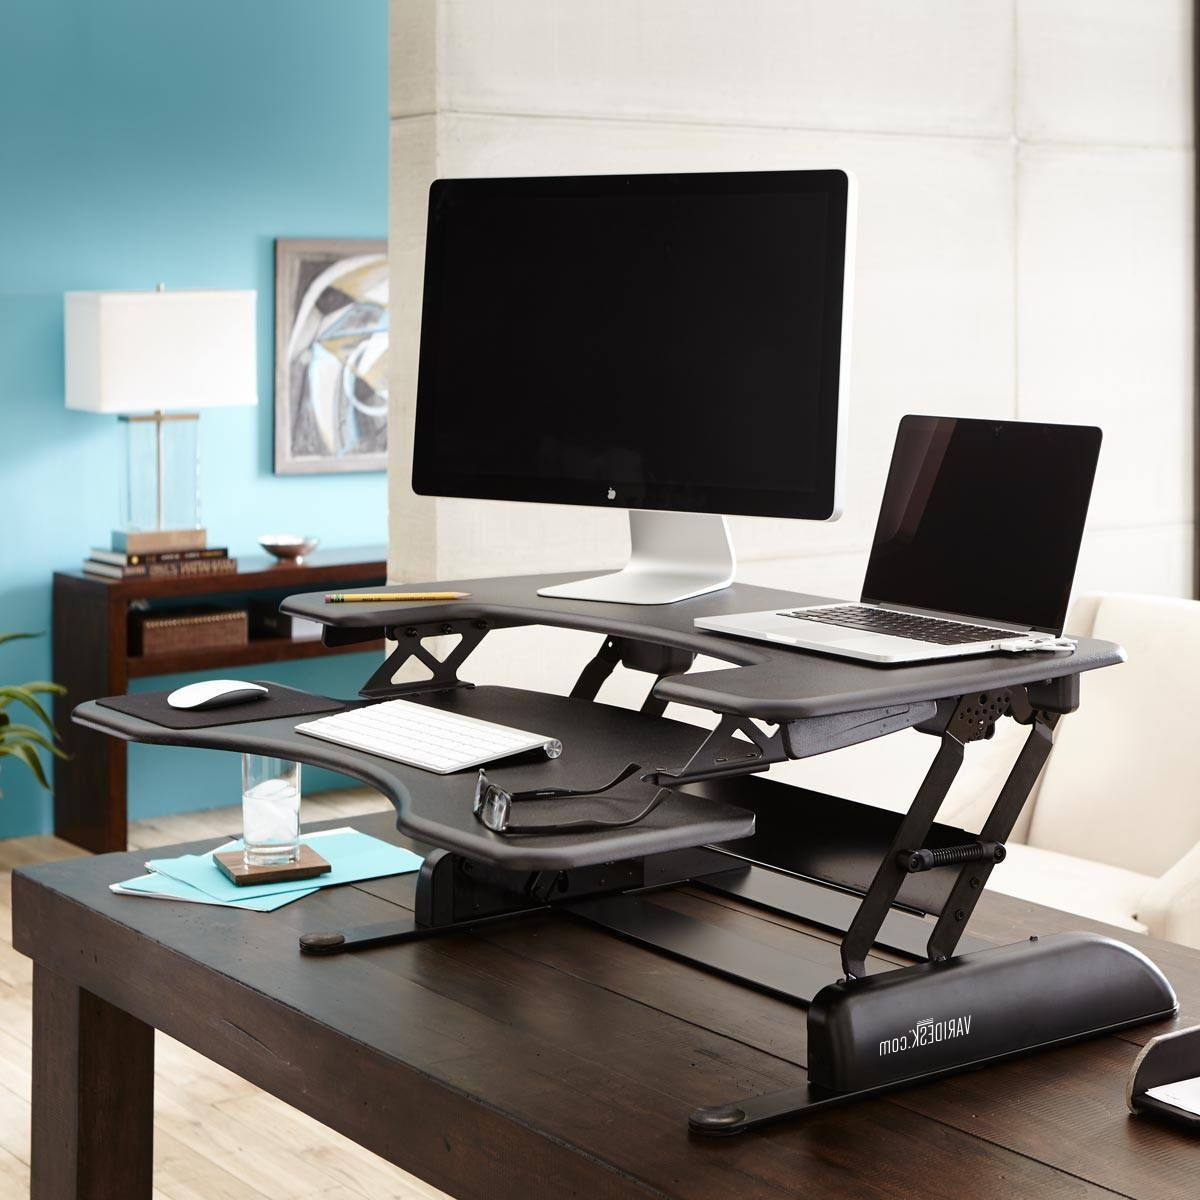 Trendy Computer Desks Under $500 For Varidesk Is Expensive – They Worth It? Well, That Depends (View 16 of 20)